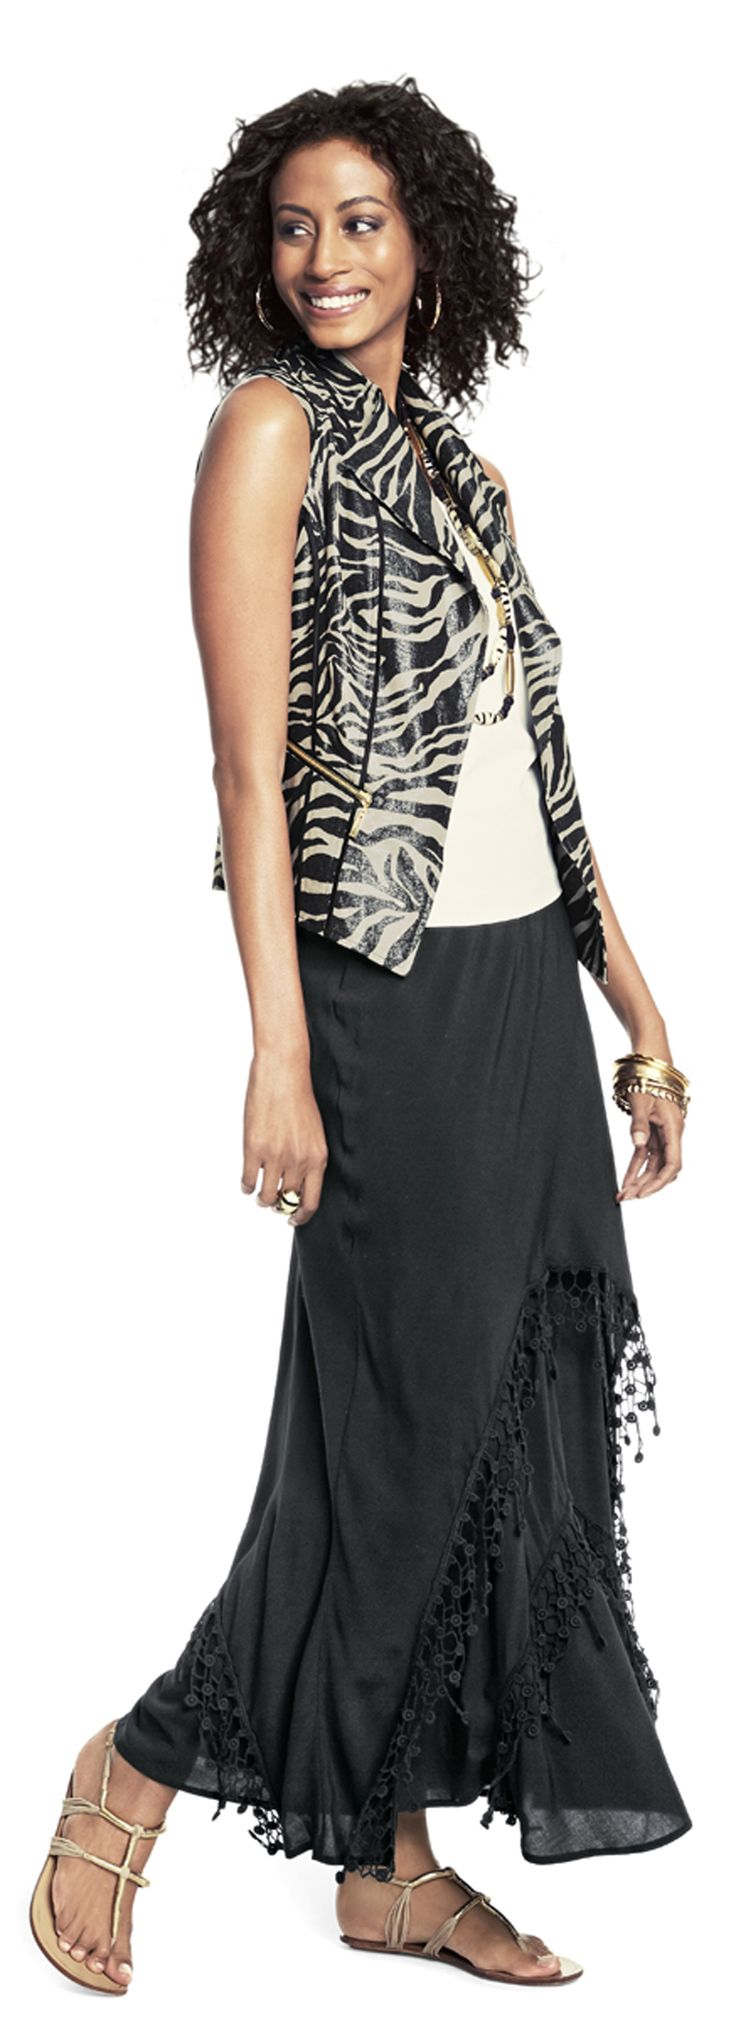 Chico's Foiled Zebra Vest and Lace Trim Lainey Skirt